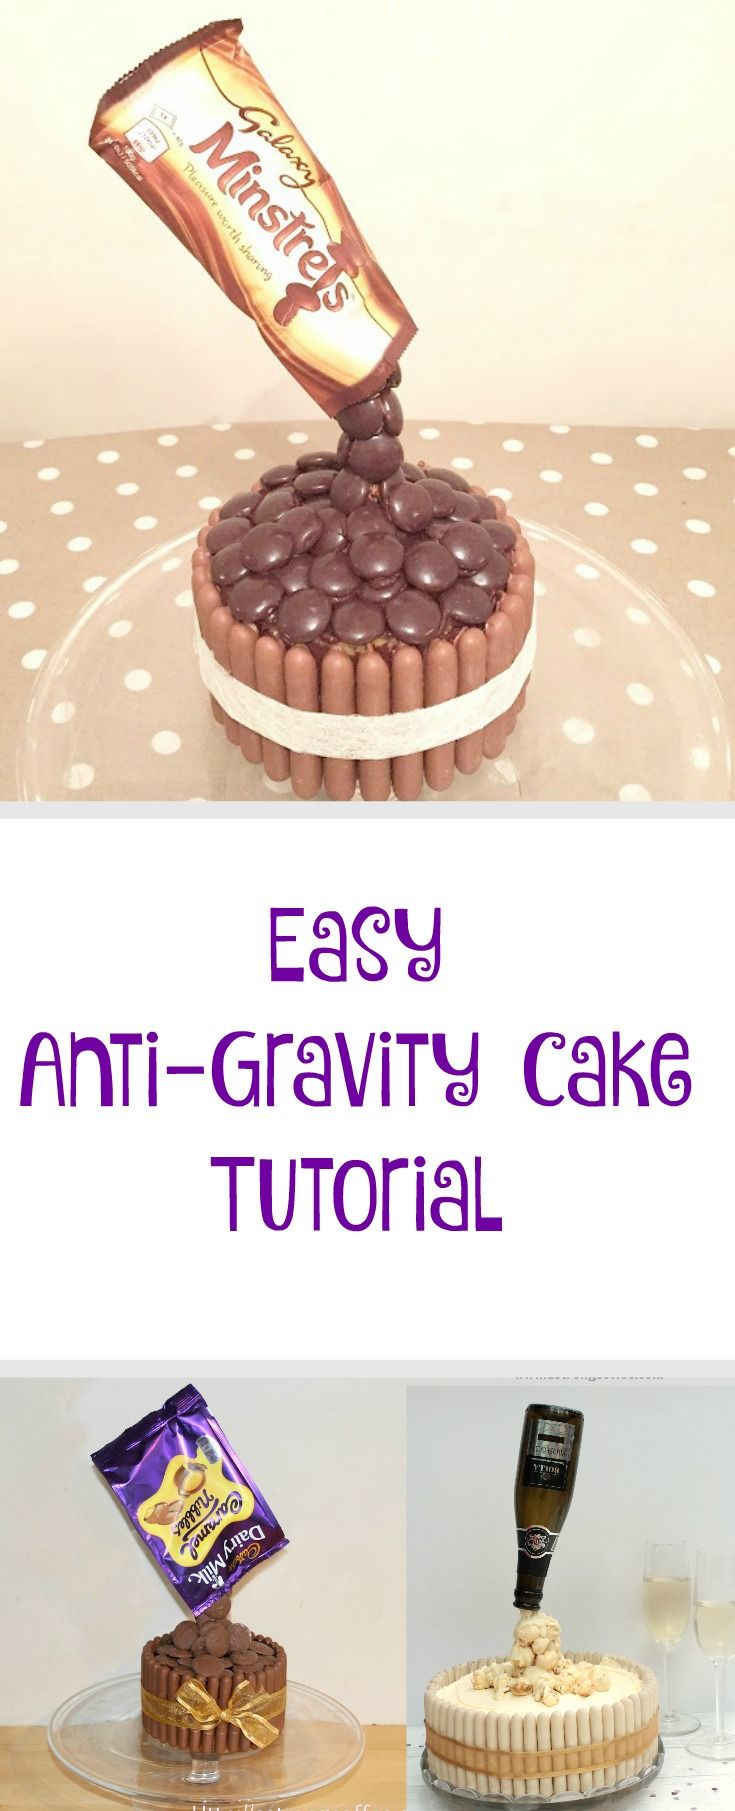 Want to make a chocolate pouring cake or anti gravity cake as they are also known? This tutorial shows you how easy it is to make these impressive looking celebration cakes